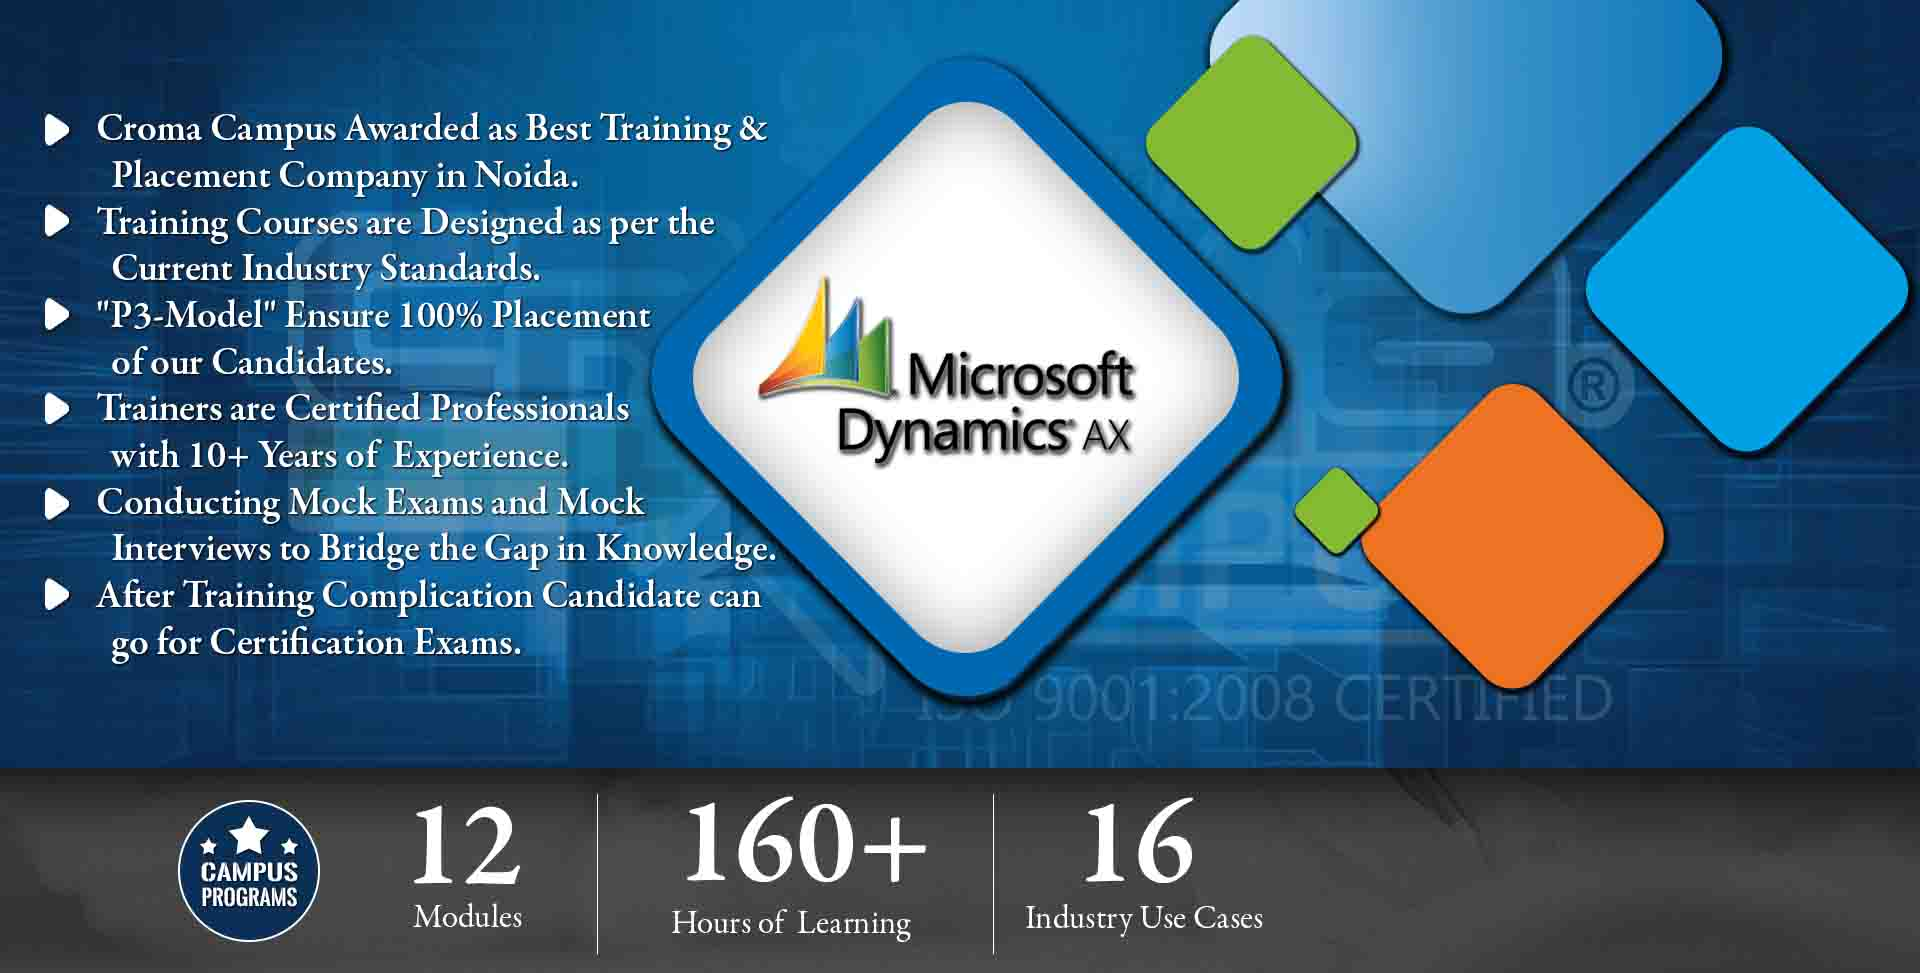 Microsoft-AX Training in Noida- Croma Campus